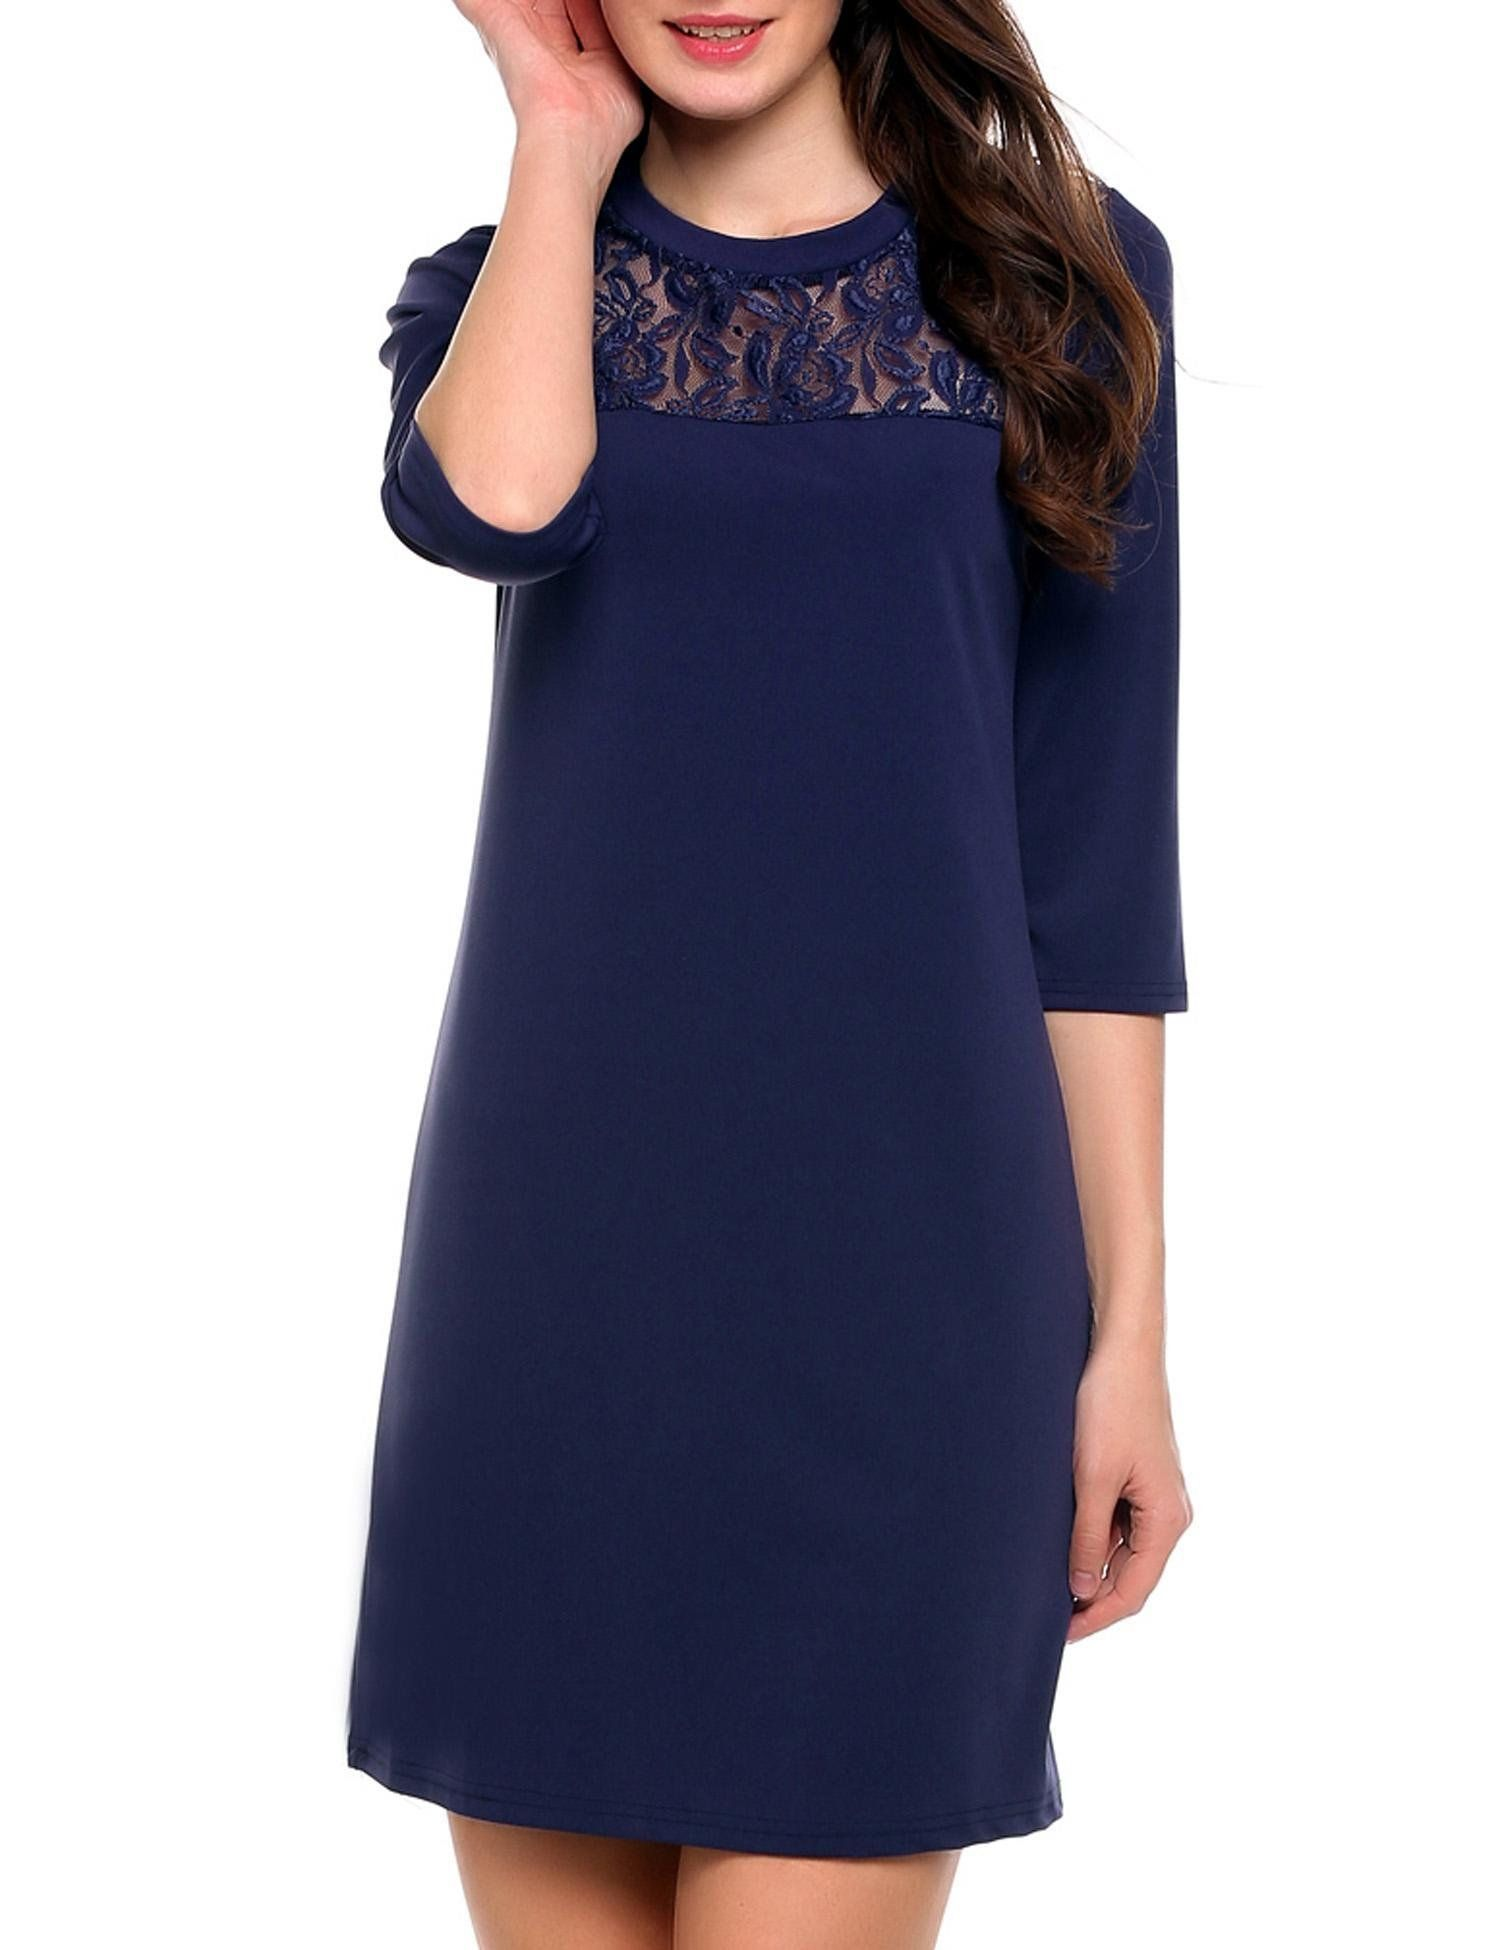 815c3ffc2a59f Maternity Styles - beautiful maternity dresses : ACEVOC Womens Maternity  Dress Casual Crew Neck Loose Tunic Dress Dark Blue S >>> Find out more at  the ...